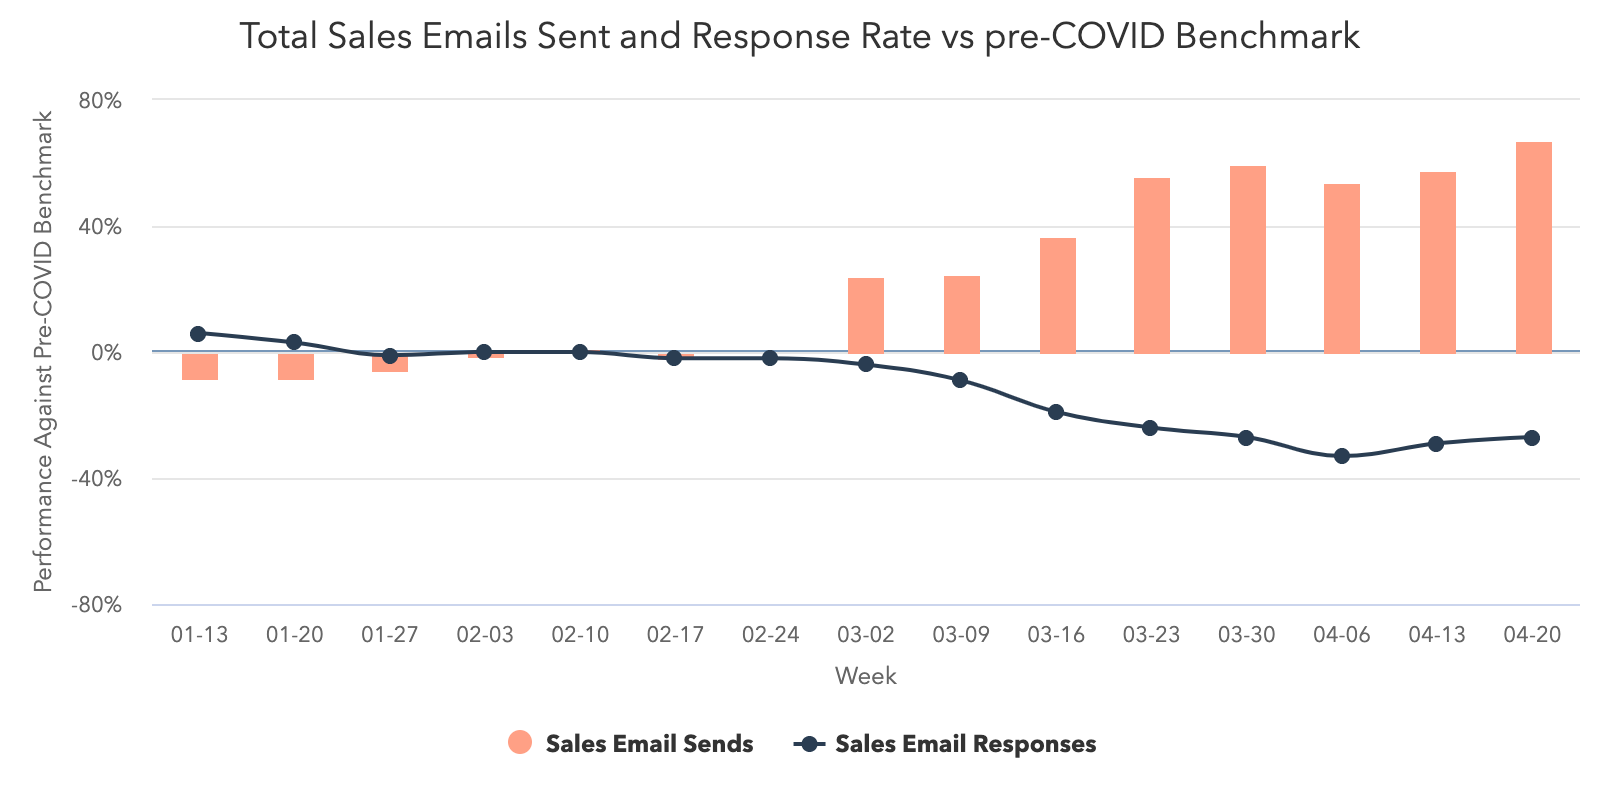 Total-Sales-Emails-Sent-vs-Response